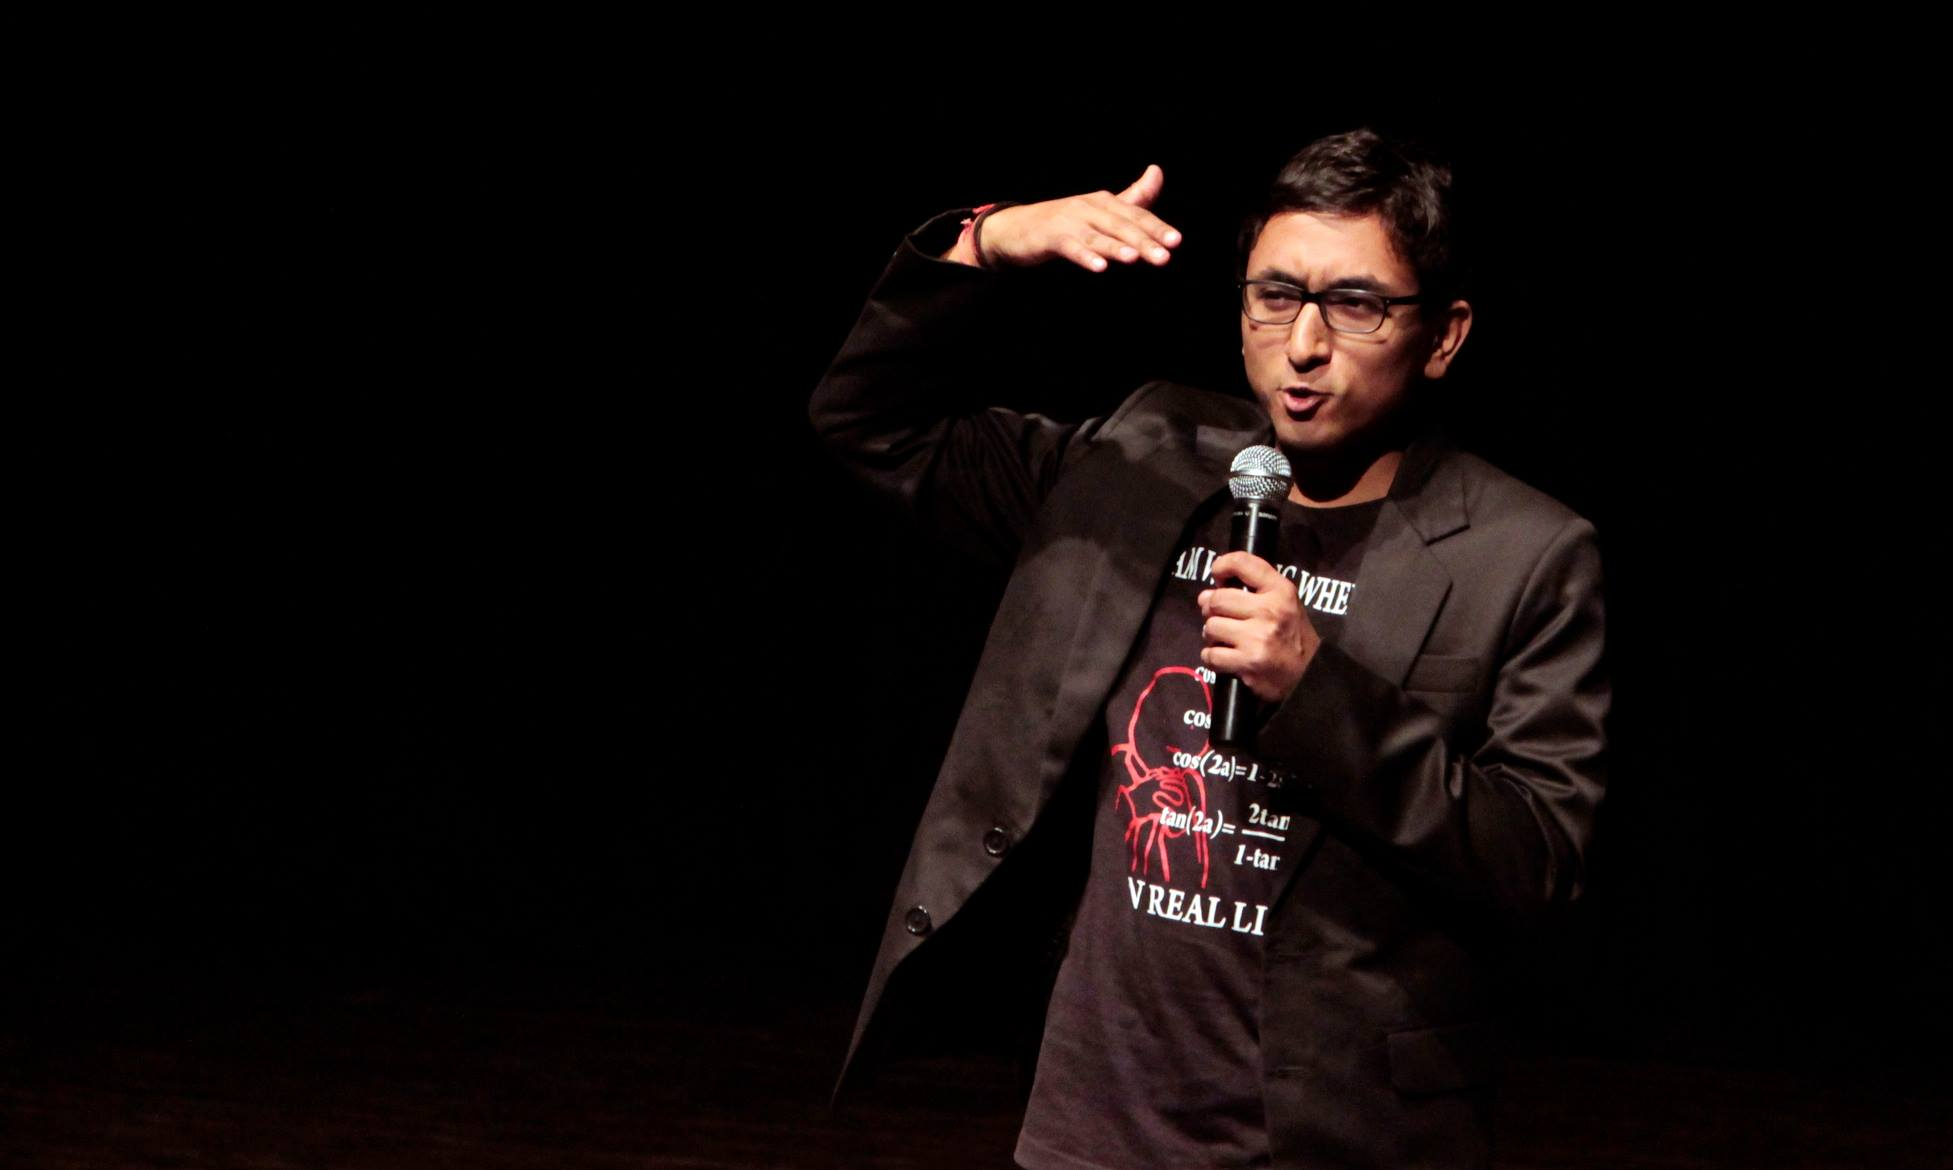 Be a Stand-up comedian